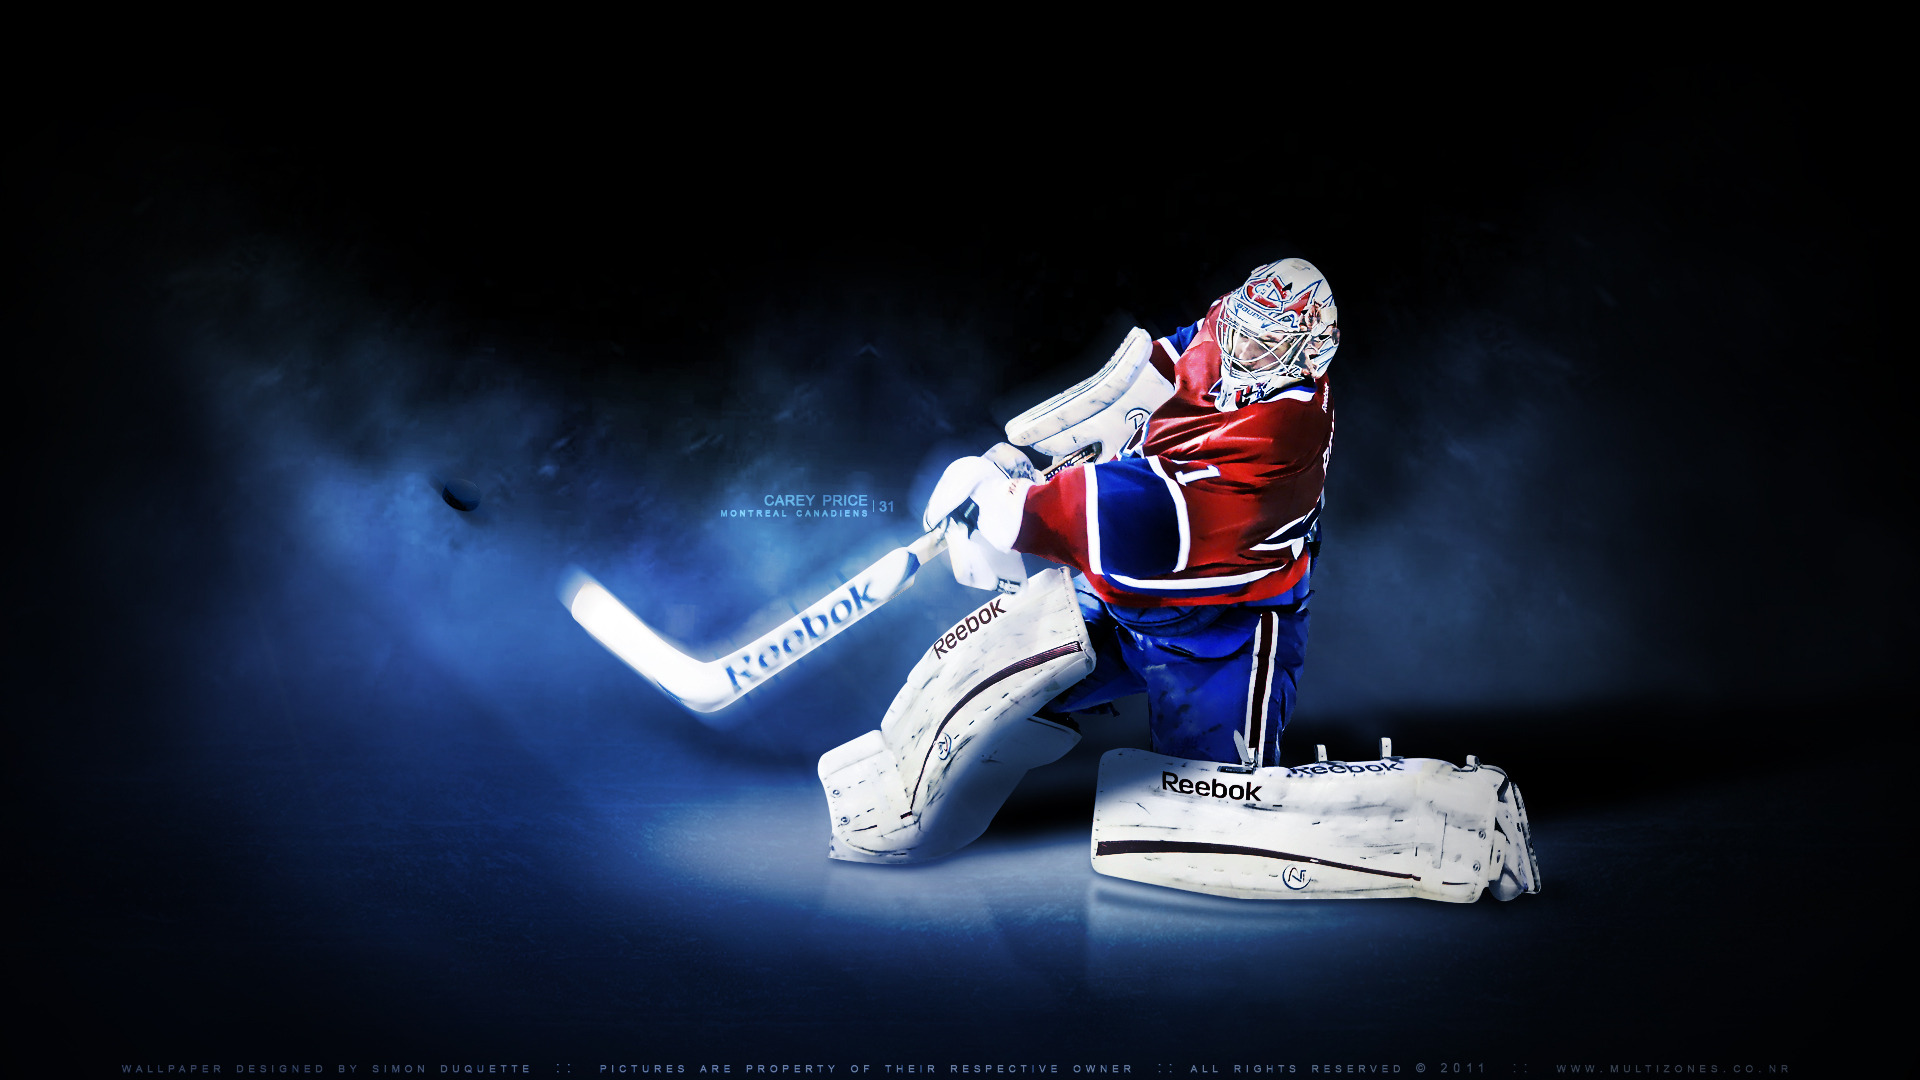 An NHL Wallpaper featuring Montreal Canadiens goaltender Carey Price 1920x1080